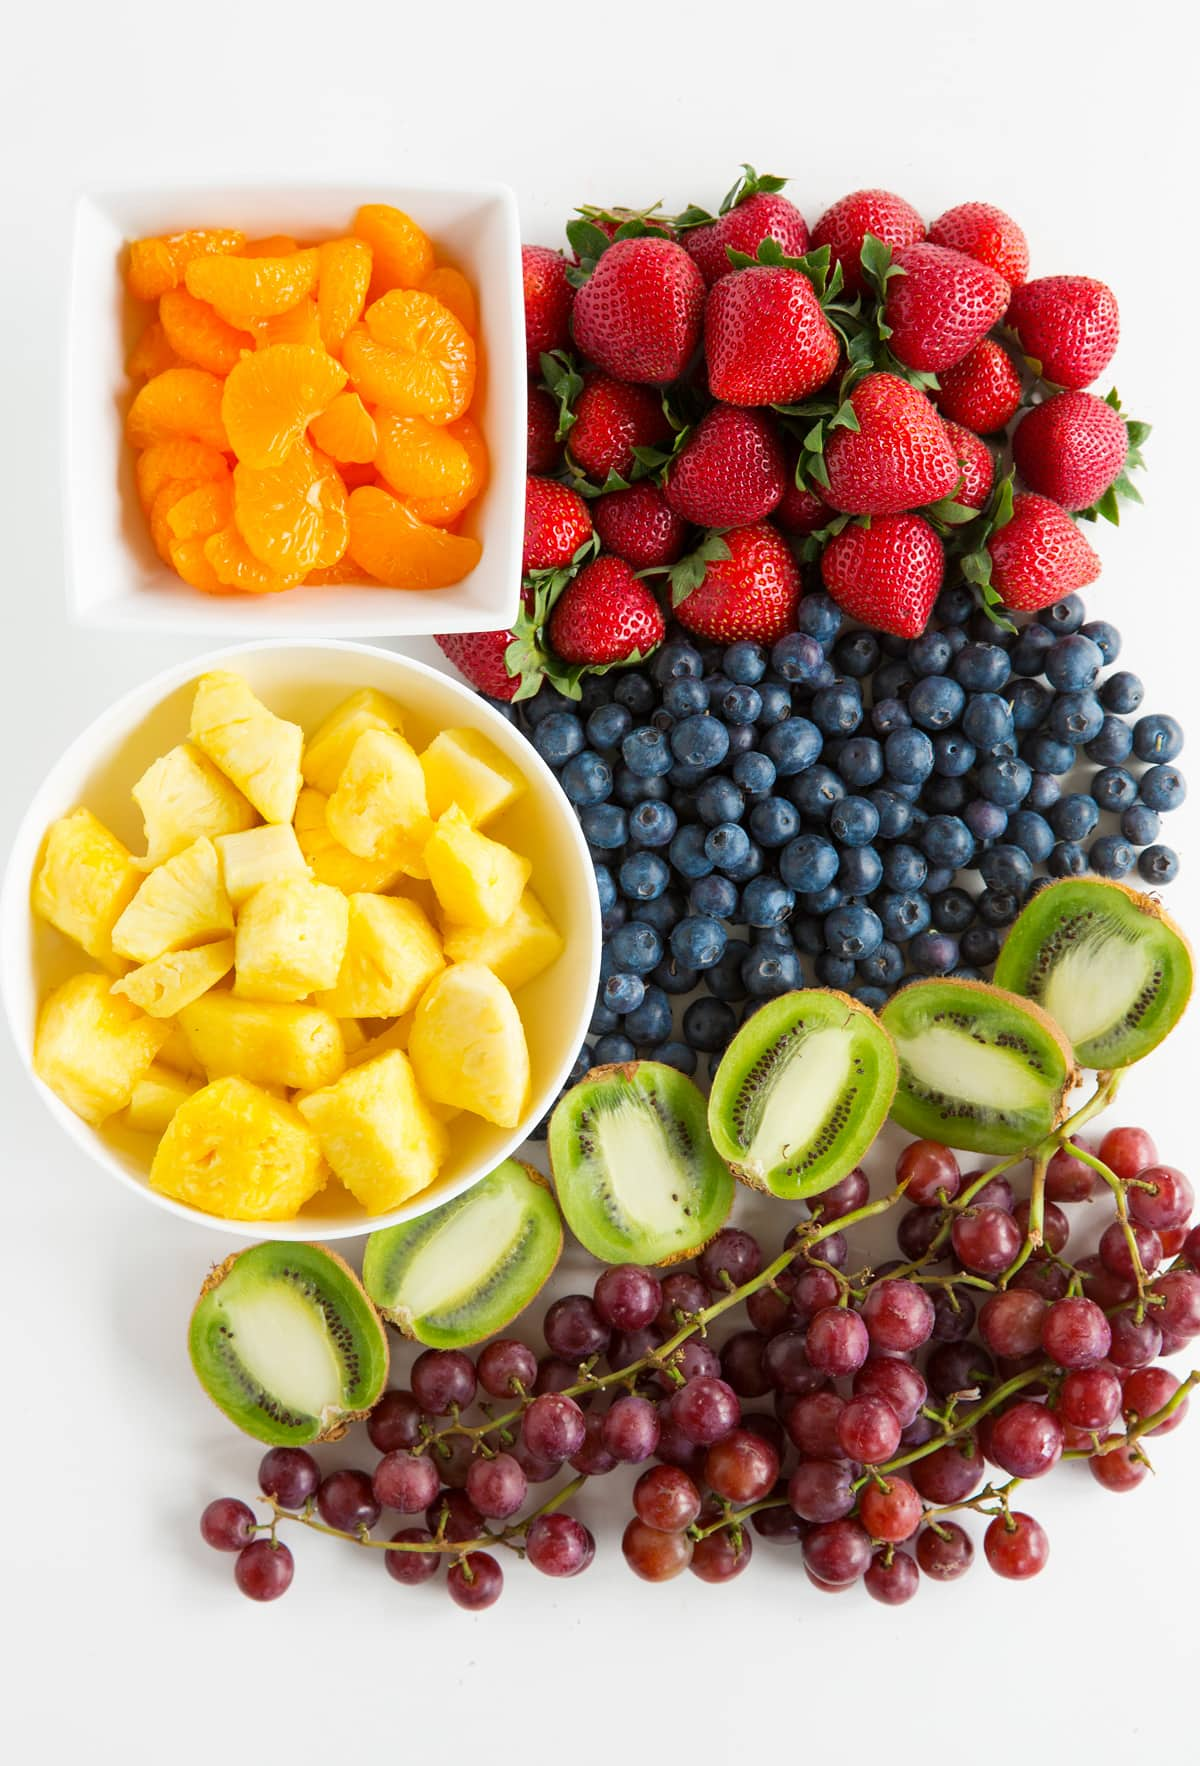 Ingredients needed to make fruit salad shown here including strawberries, blueberries, kiwi, grapes, pineapple and oranges.